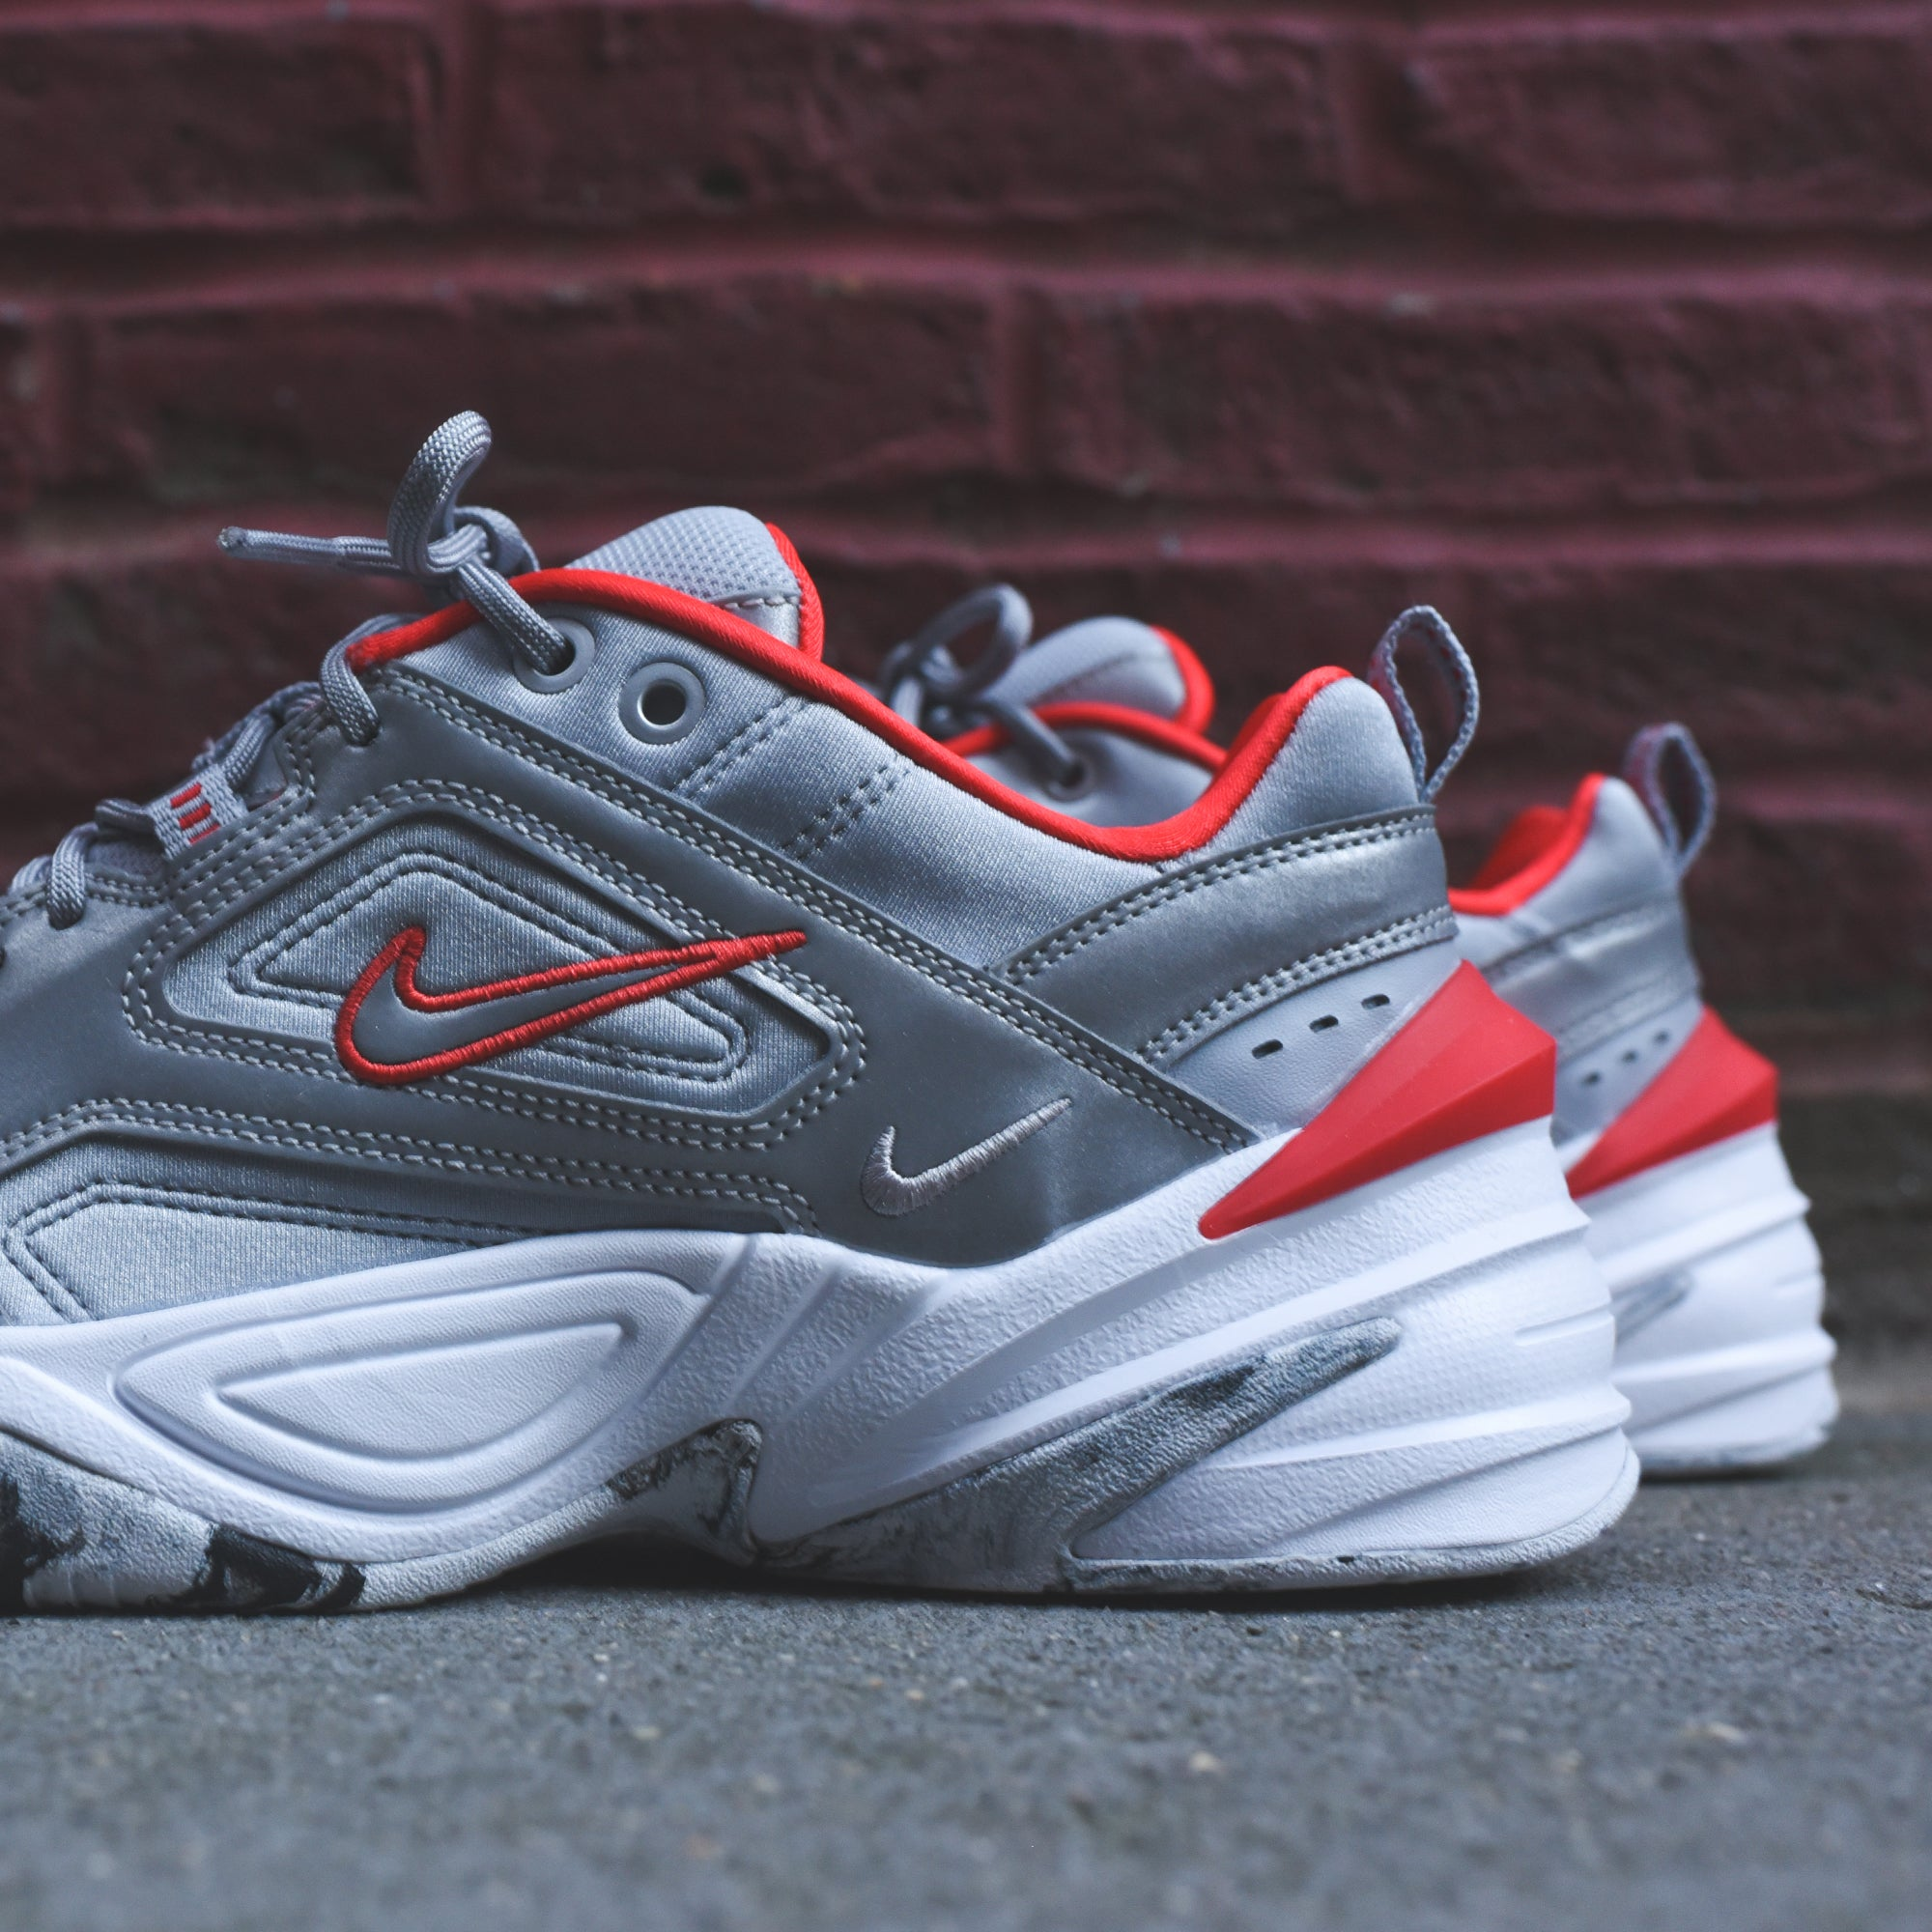 d8669294190 Nike WMNS M2k Tekno - Reflective Silver   Red – Kith